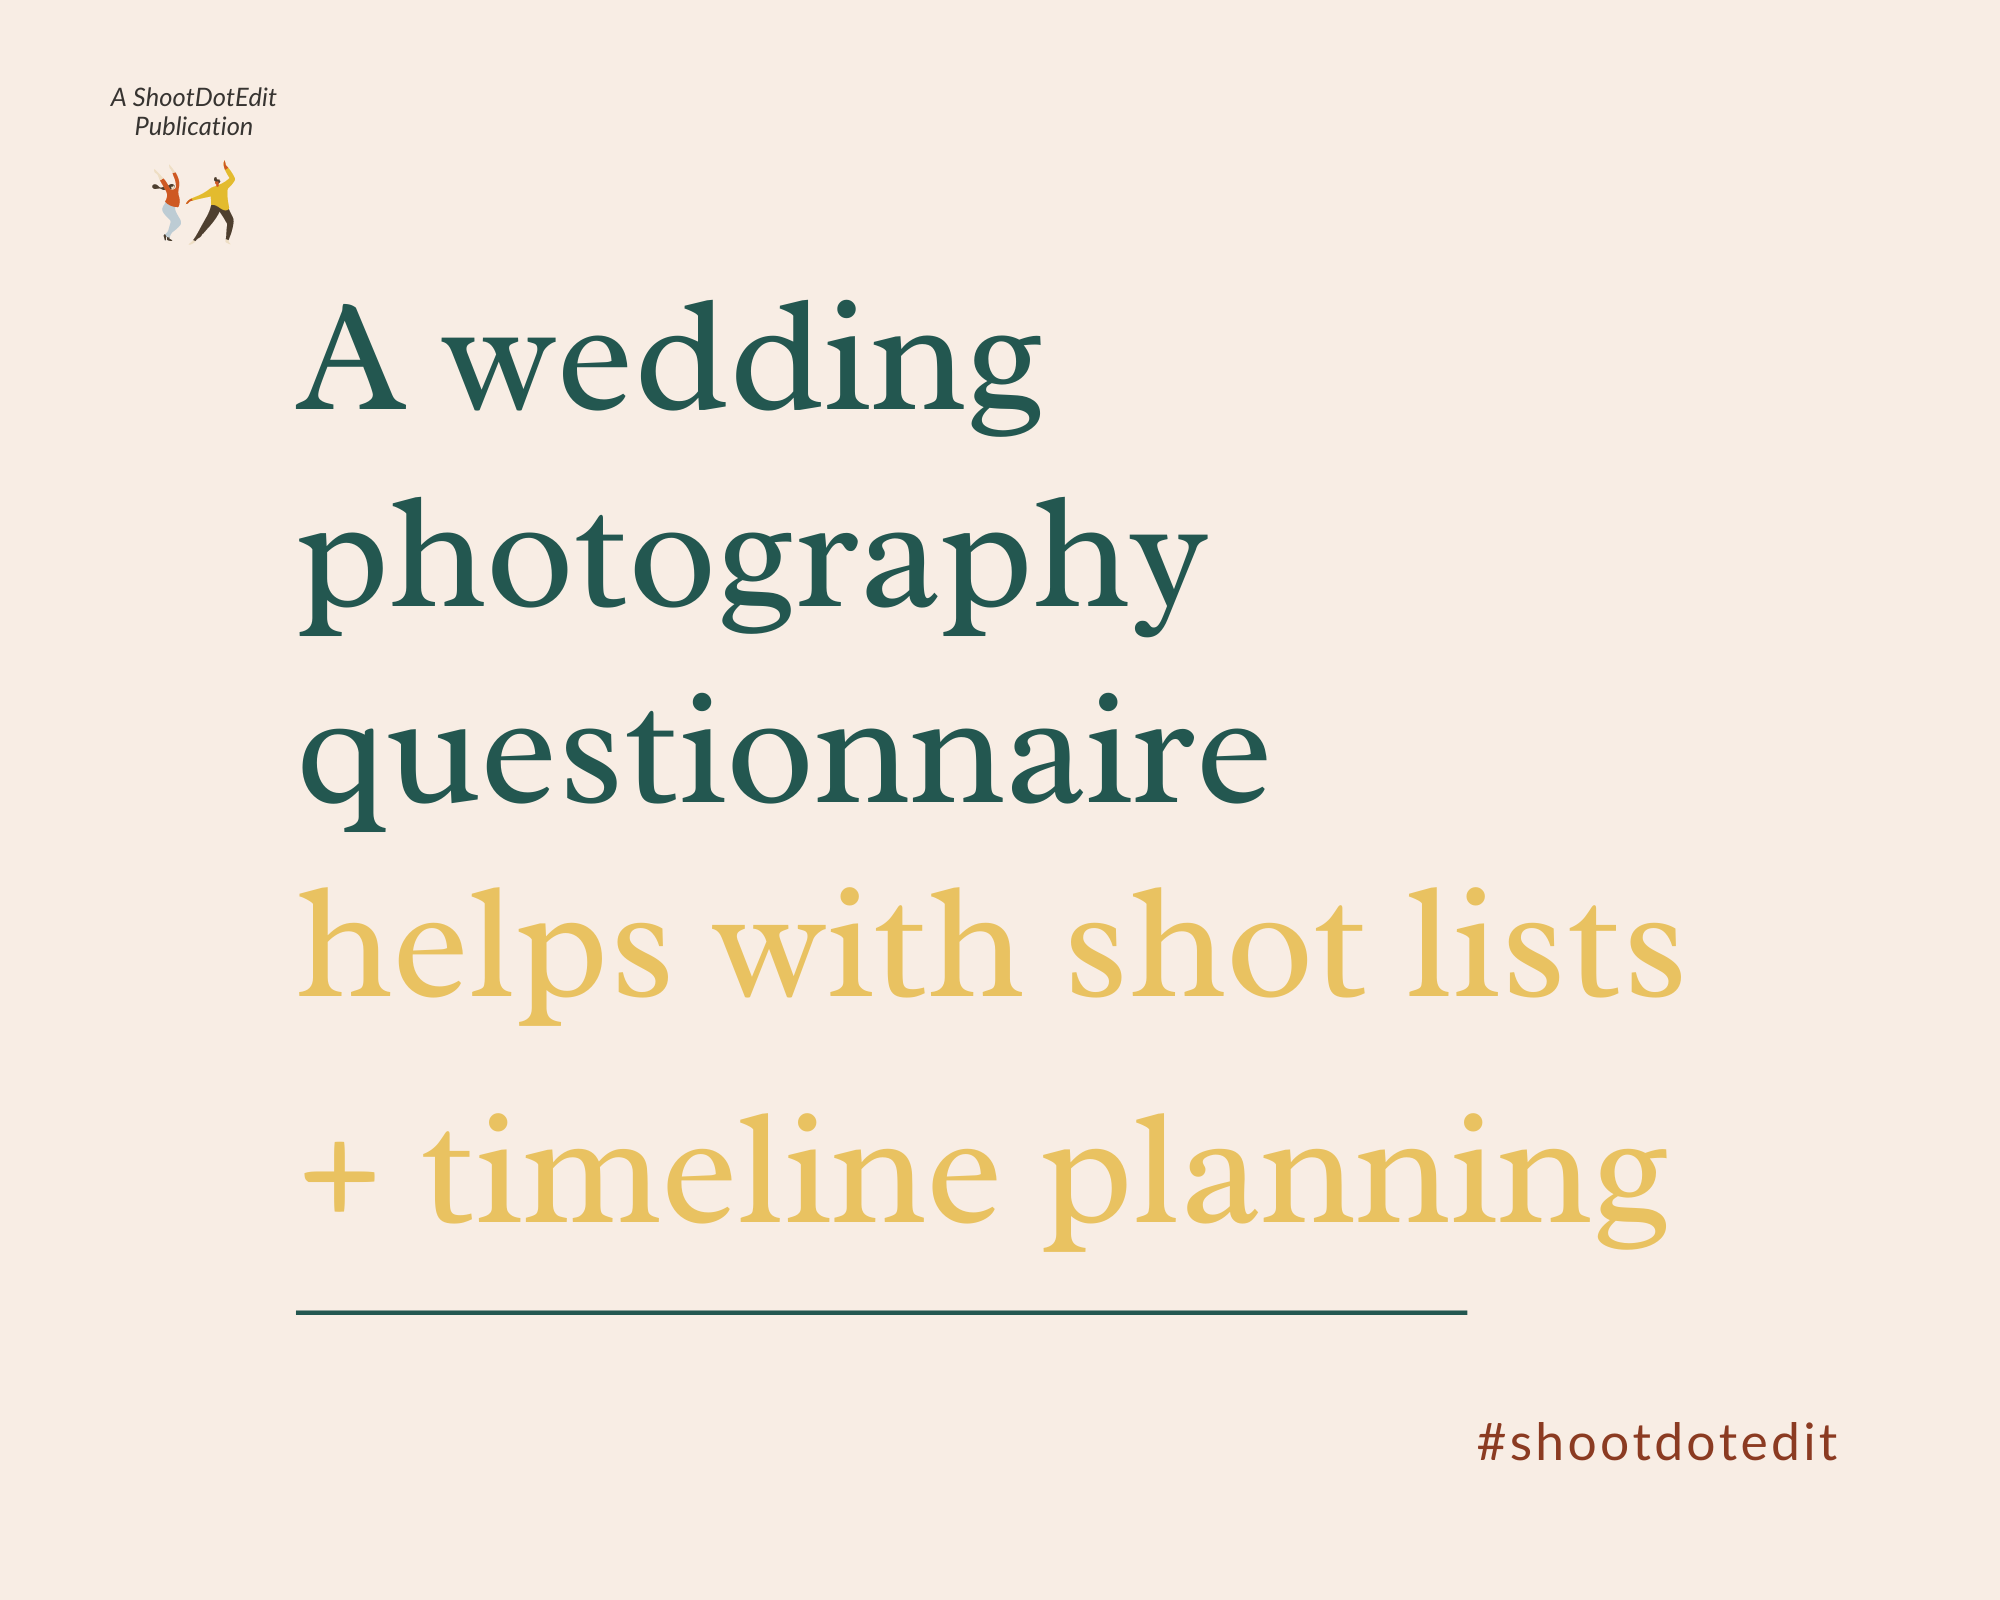 Infographic stating a wedding questionnaire helps with shot lists and timeline planning